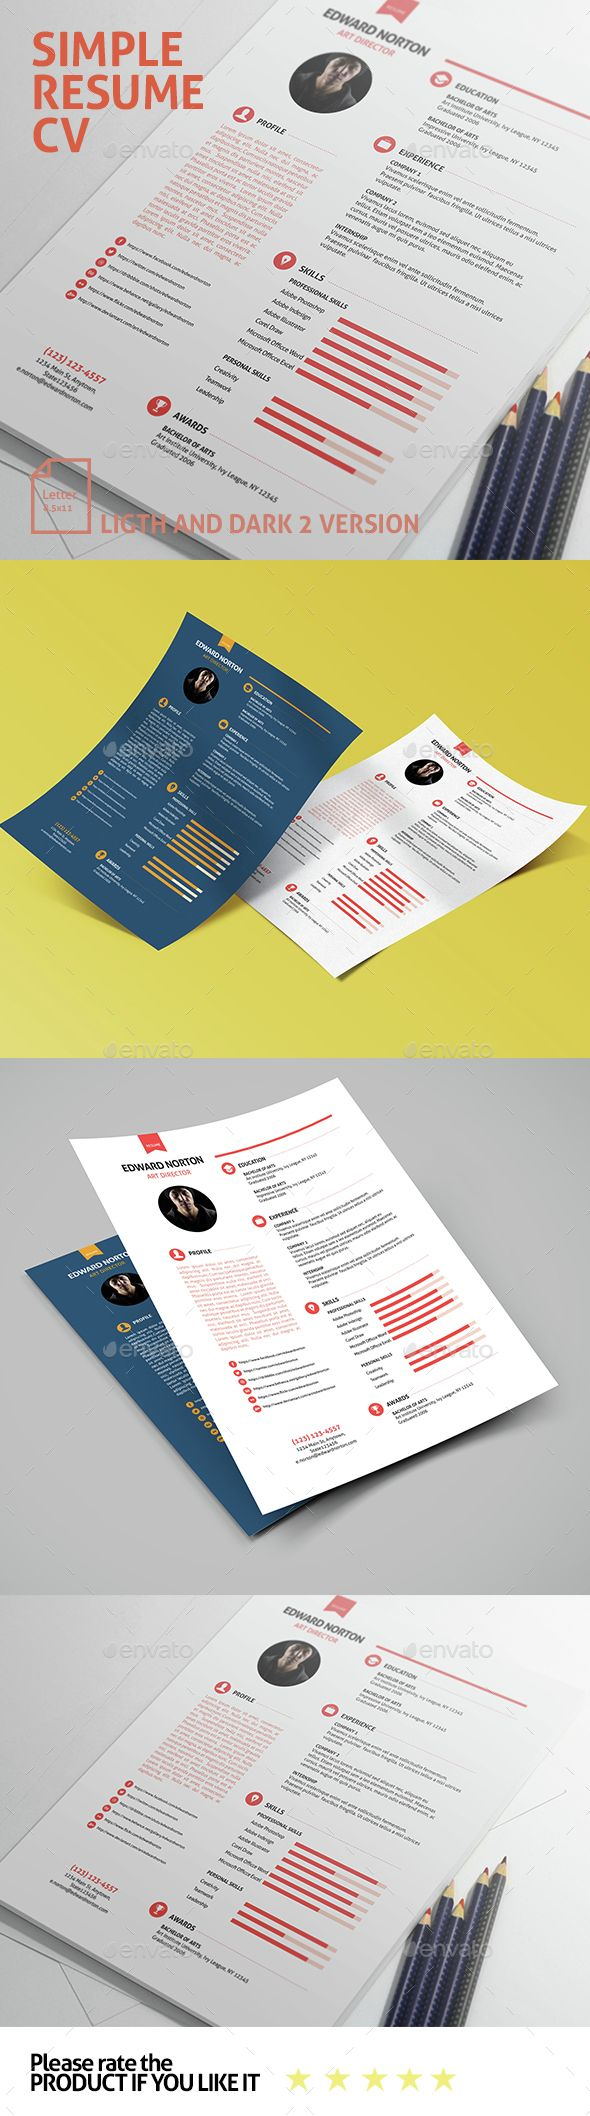 active words for resumes%0A ideas about Simple Resume Examples on Pinterest Simple